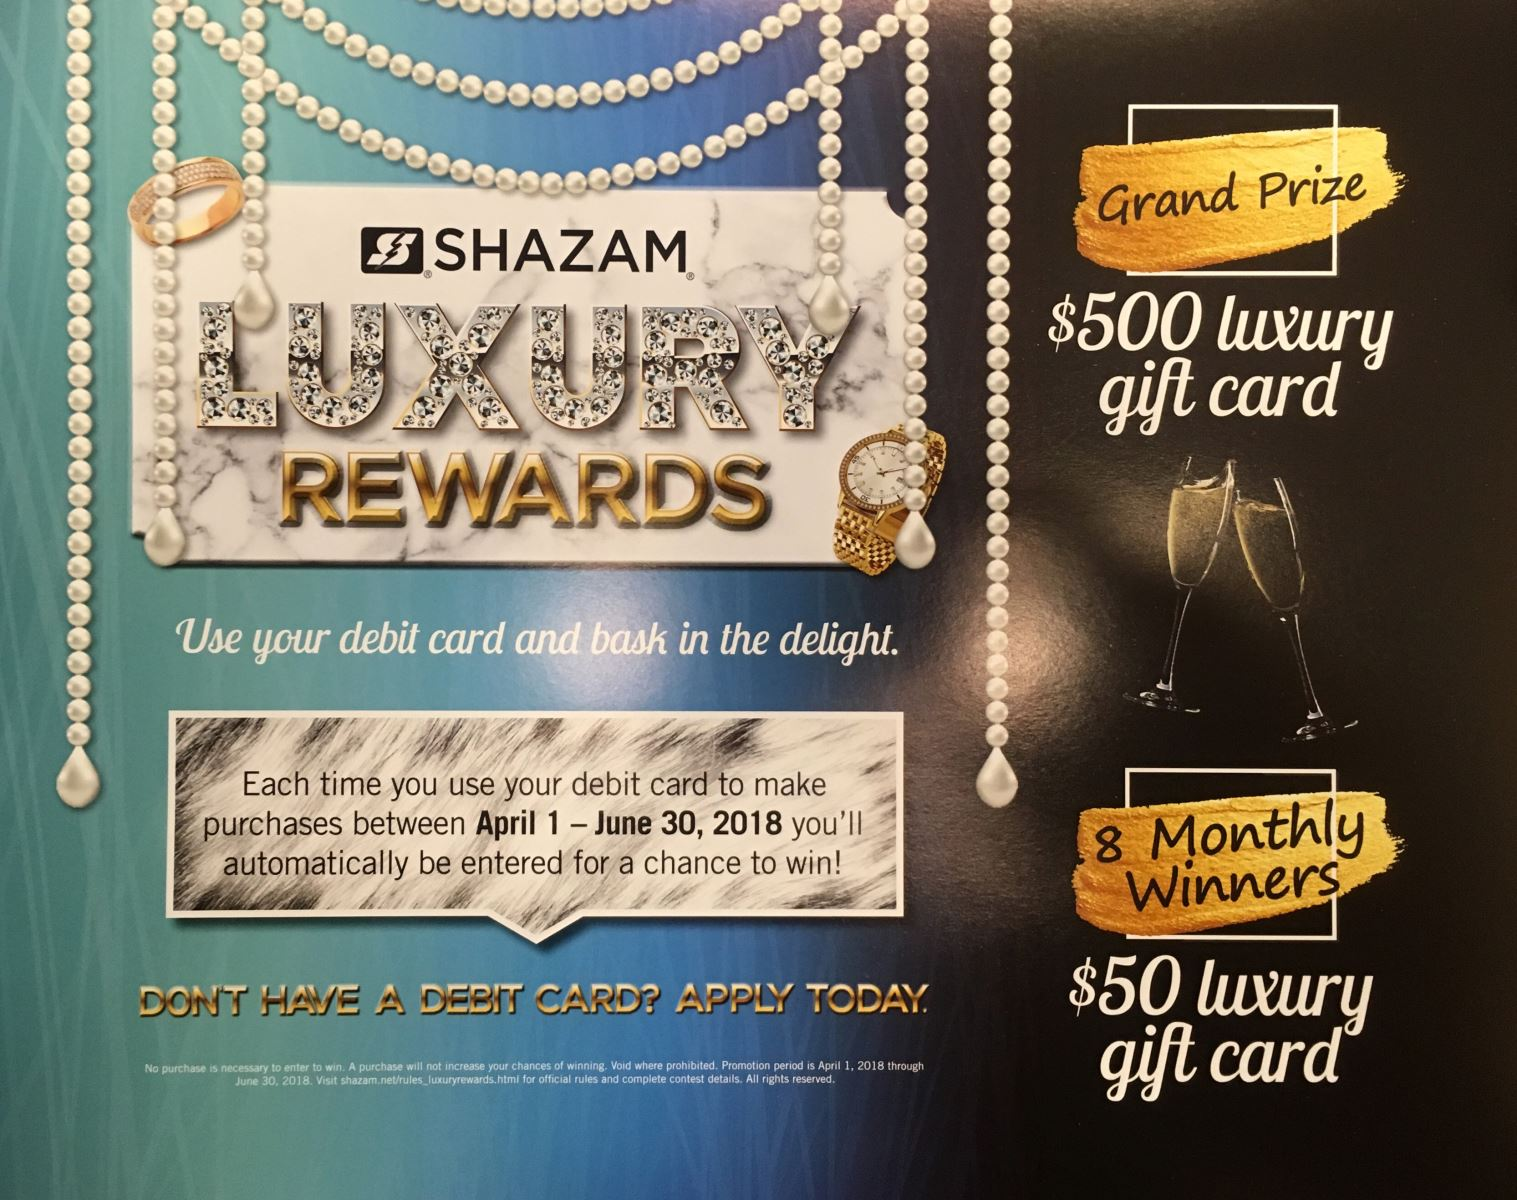 Shazam debit cards offers rewards with grand prize